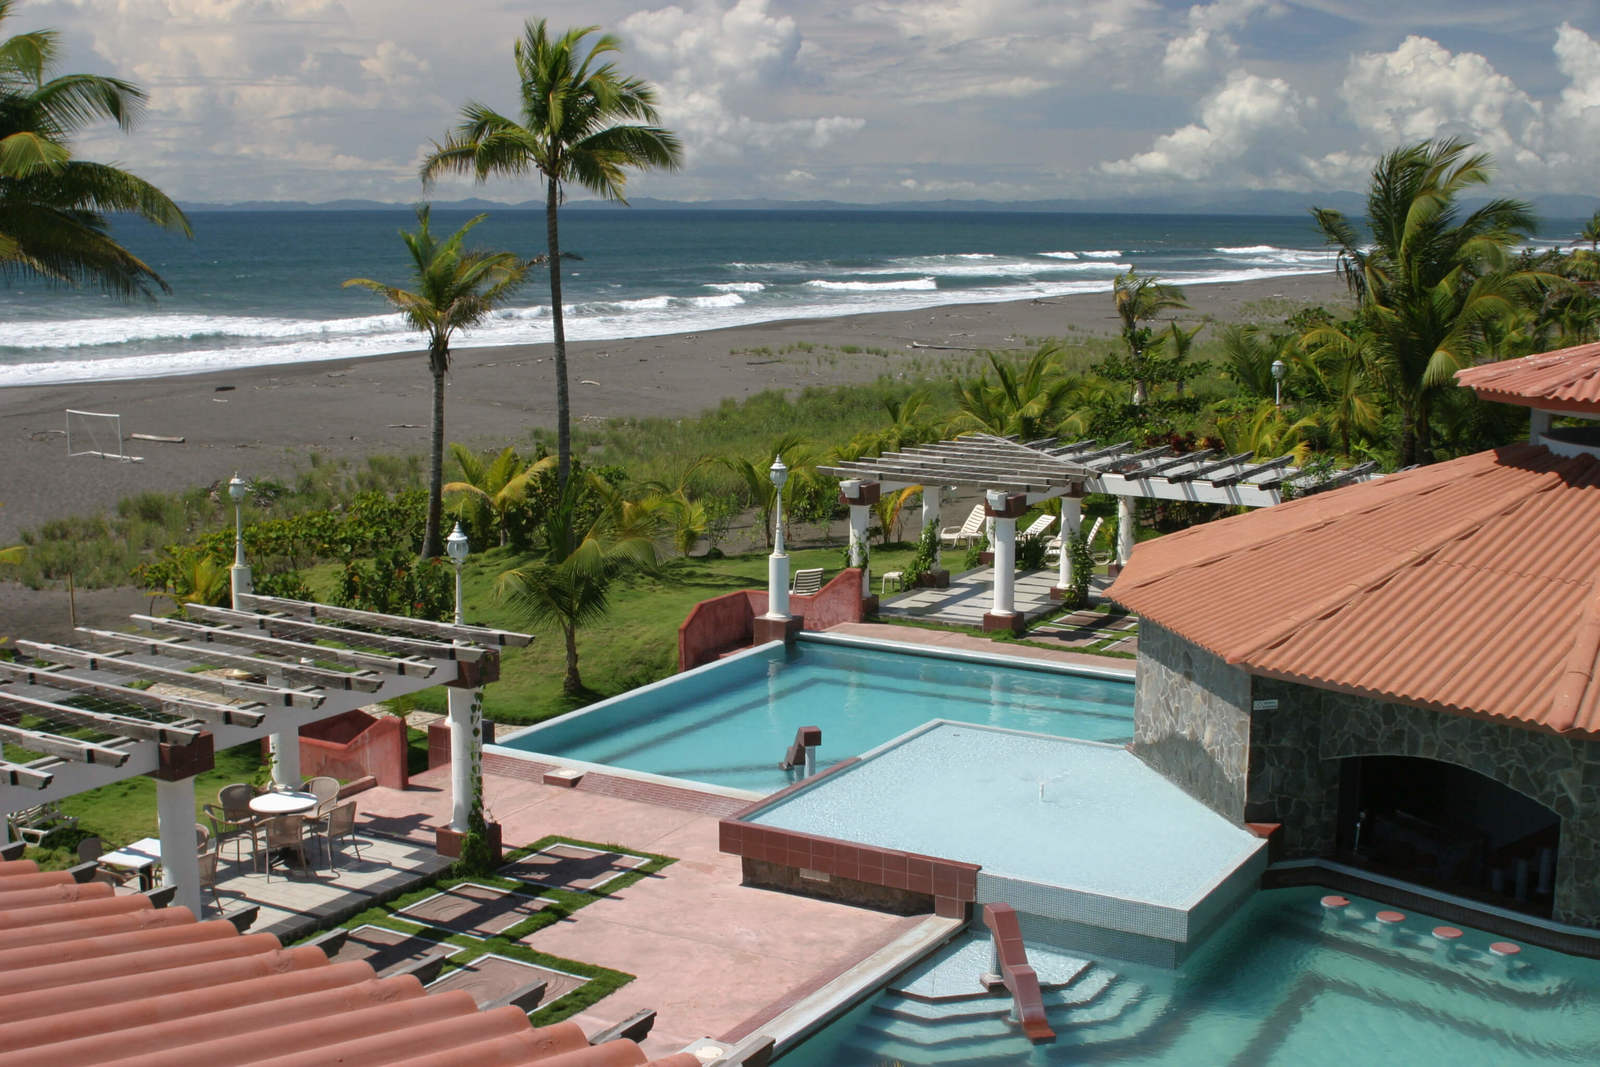 Best List of Luxury Hotels in David, Panama - Las Olas Beach Resort